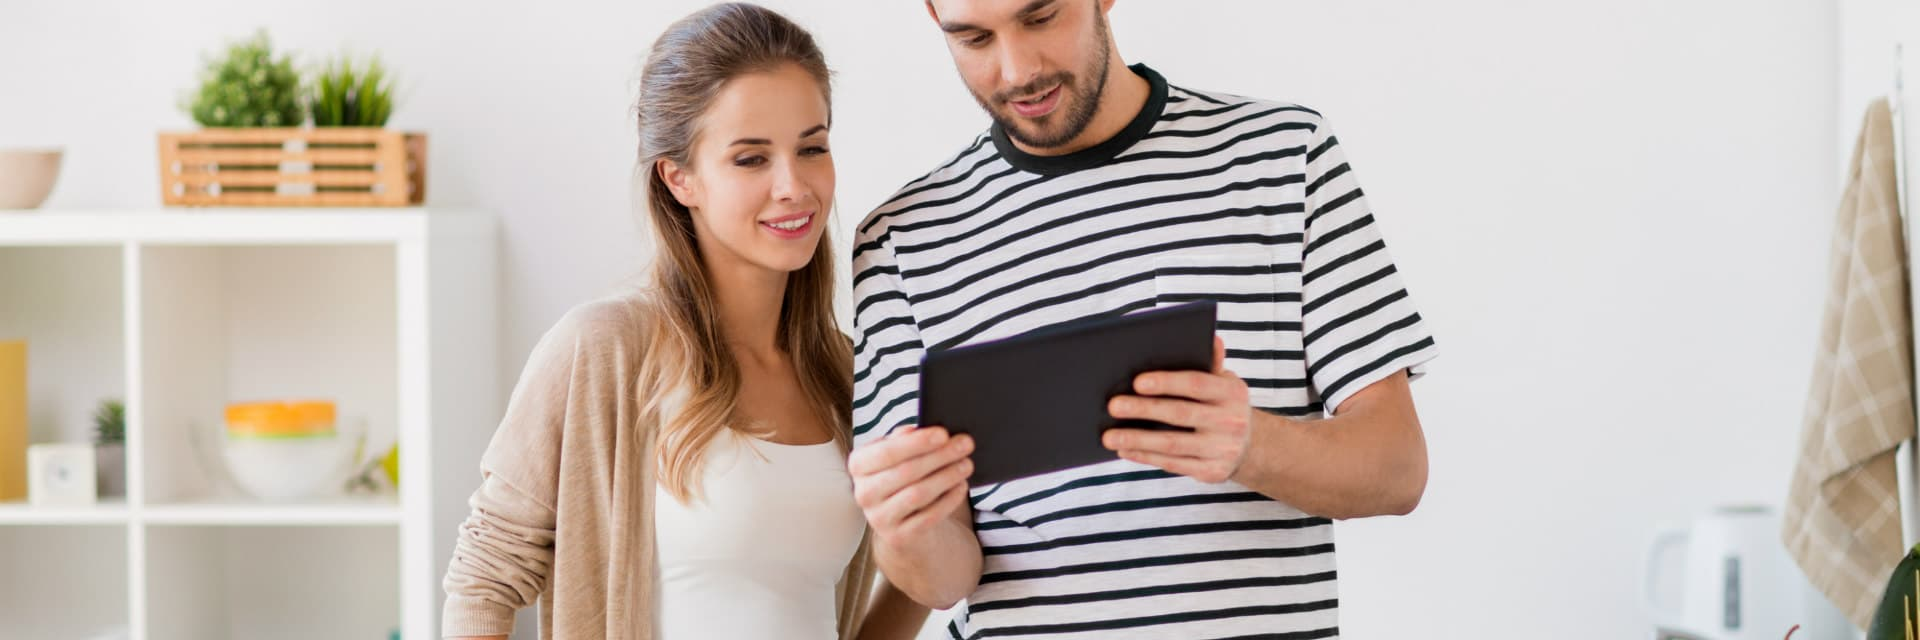 couple in kitchen looking at ipad